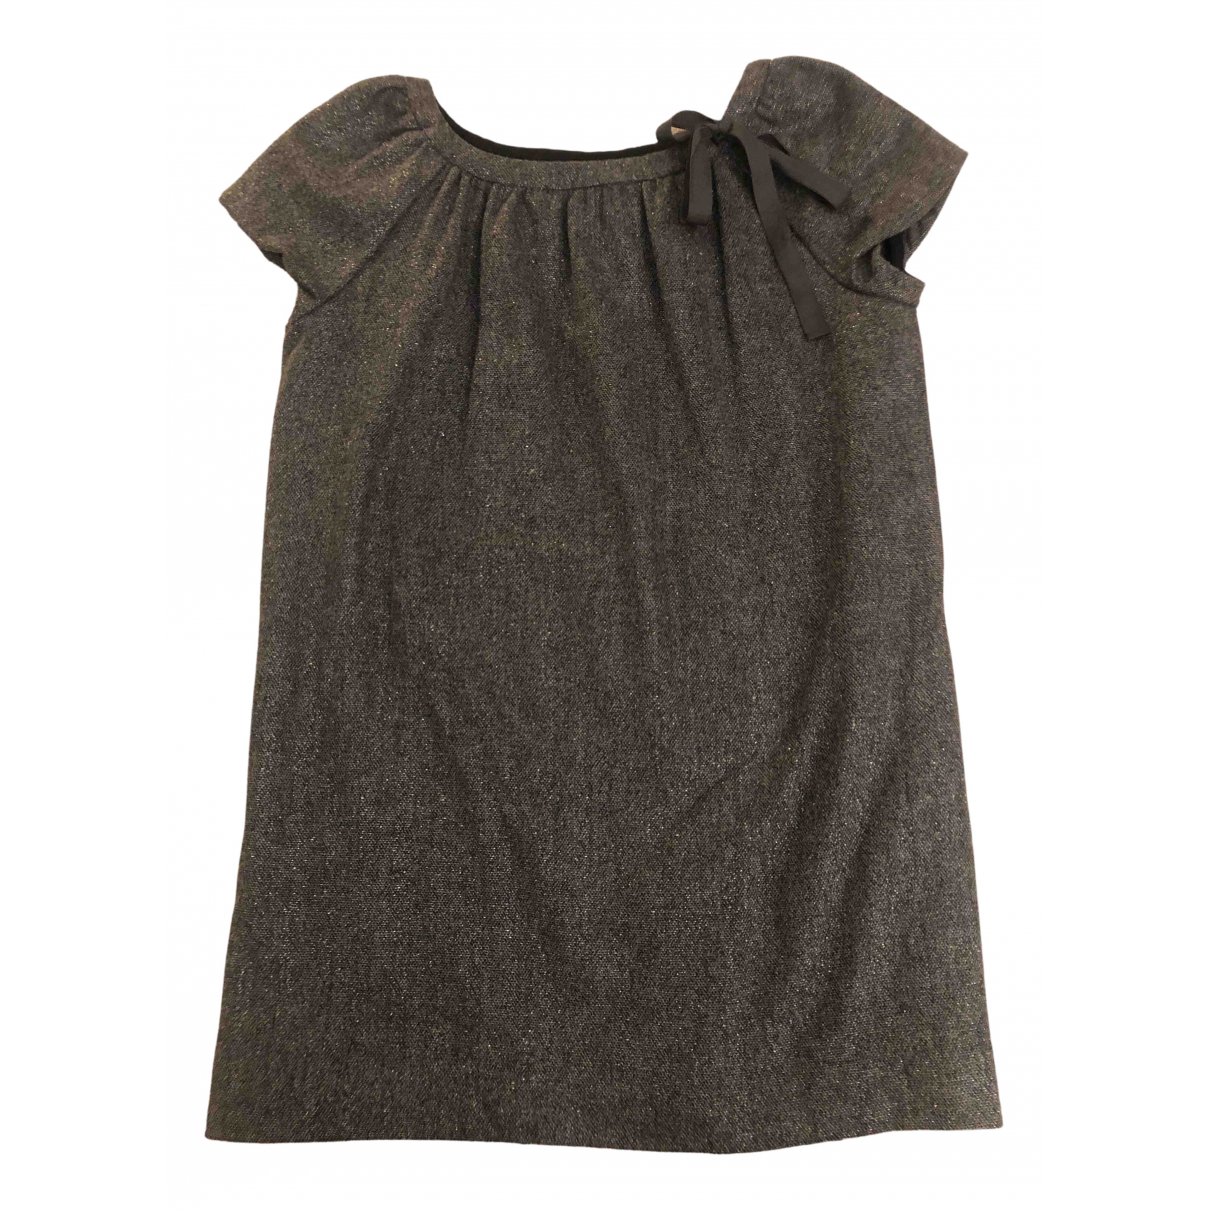 Bonpoint N Grey Wool dress for Kids 10 years - up to 142cm FR